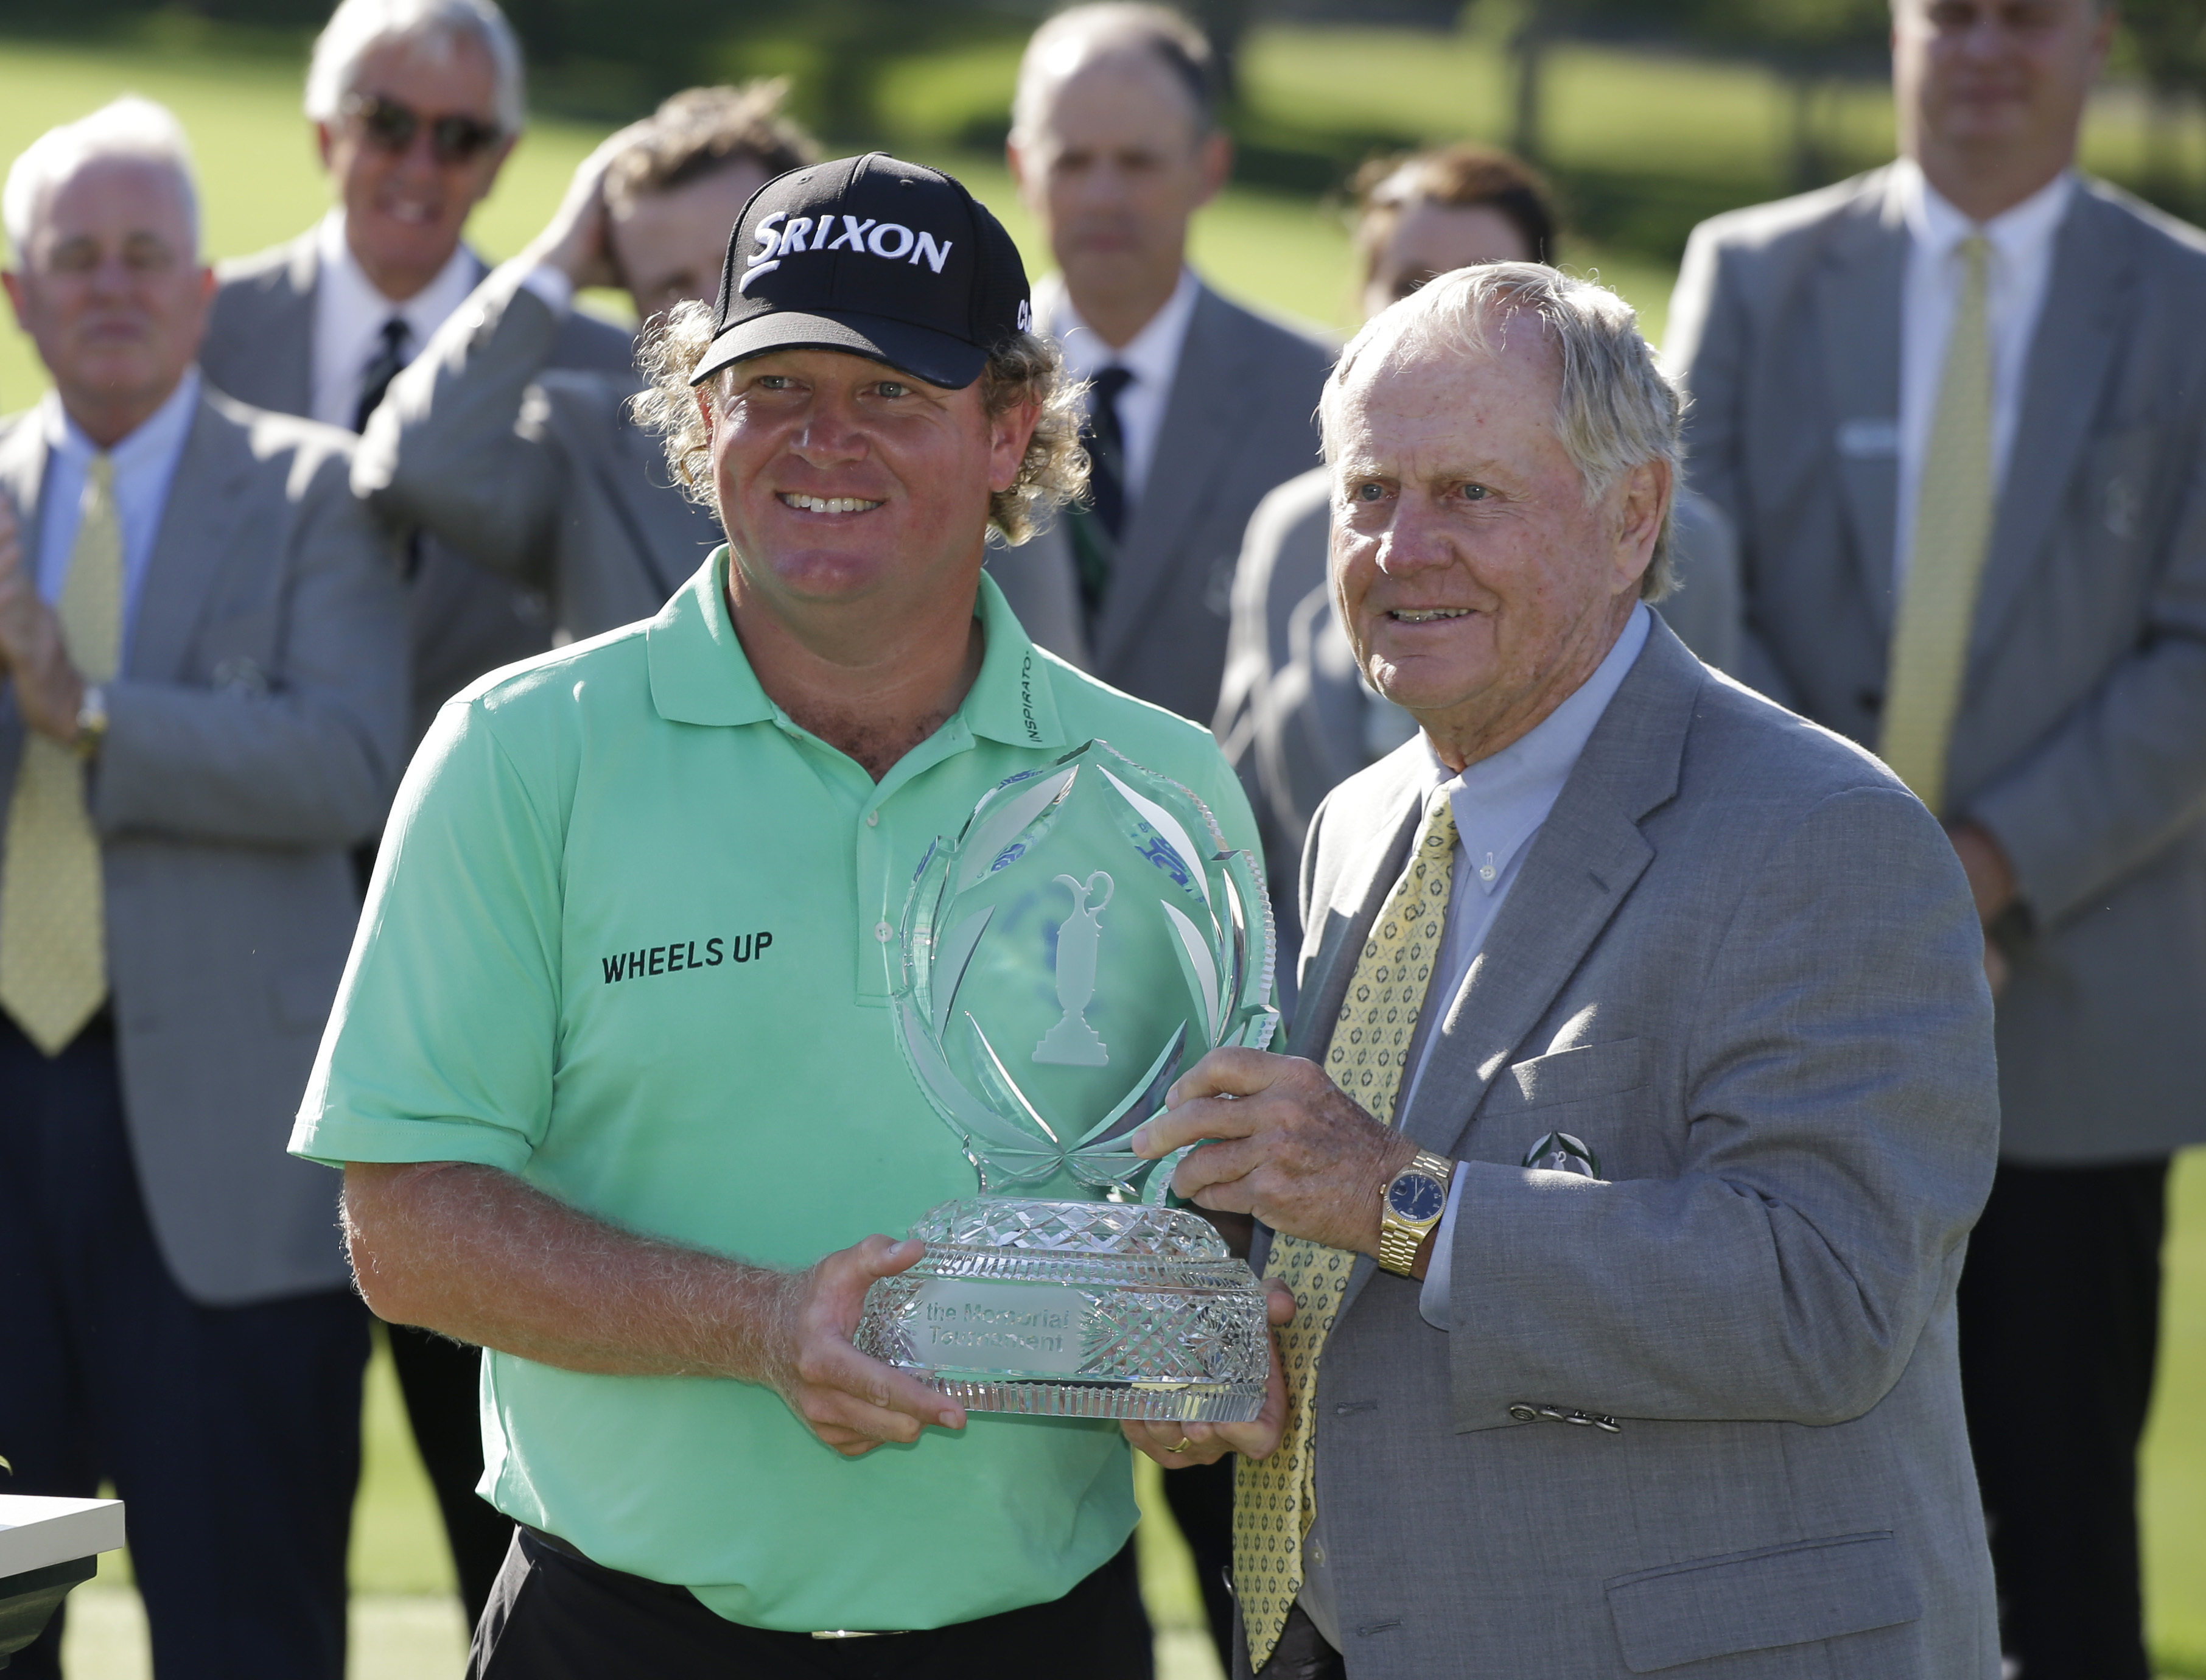 Jack Nicklaus presents the trophy to William McGirt after McGirt won the Memorial golf tournament in a playoff, Sunday, June 5, 2016, in Dublin, Ohio. (AP Photo/Darron Cummings)